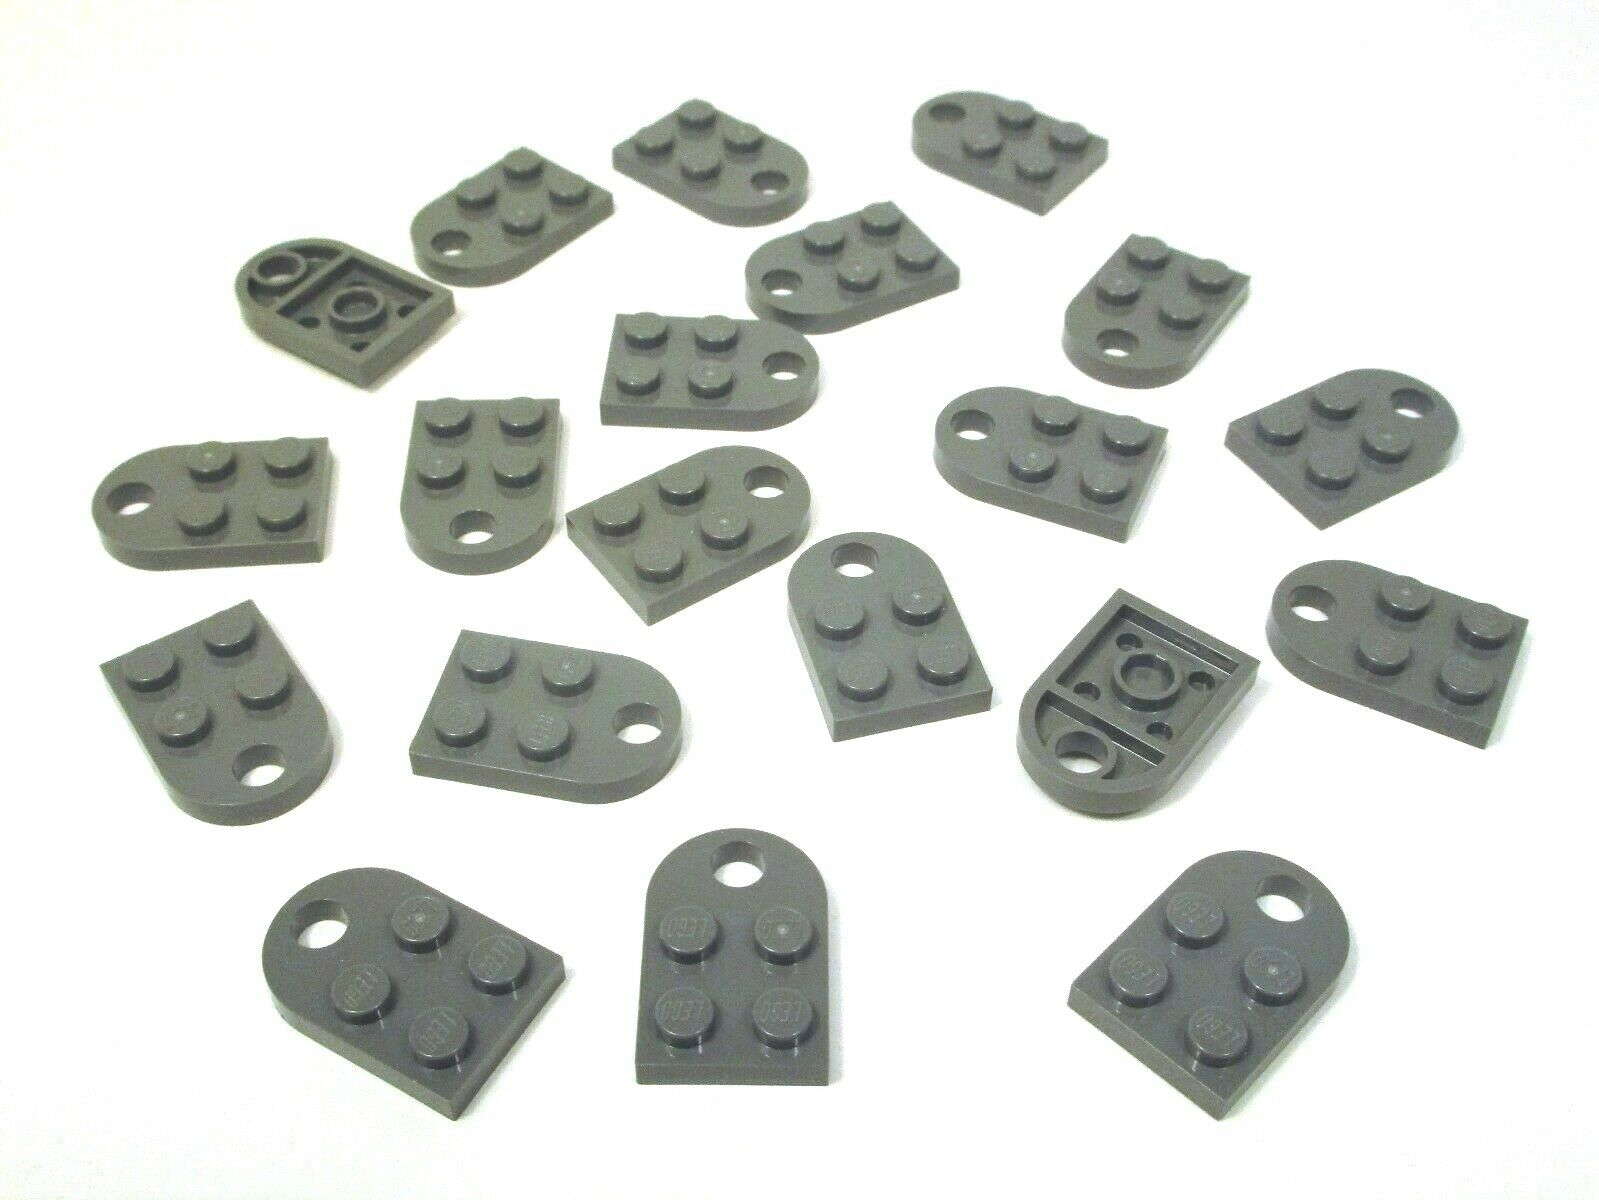 New Genuine LEGO Heart Charm 3x2 Plates with Hole Coupling Lime Green Gift